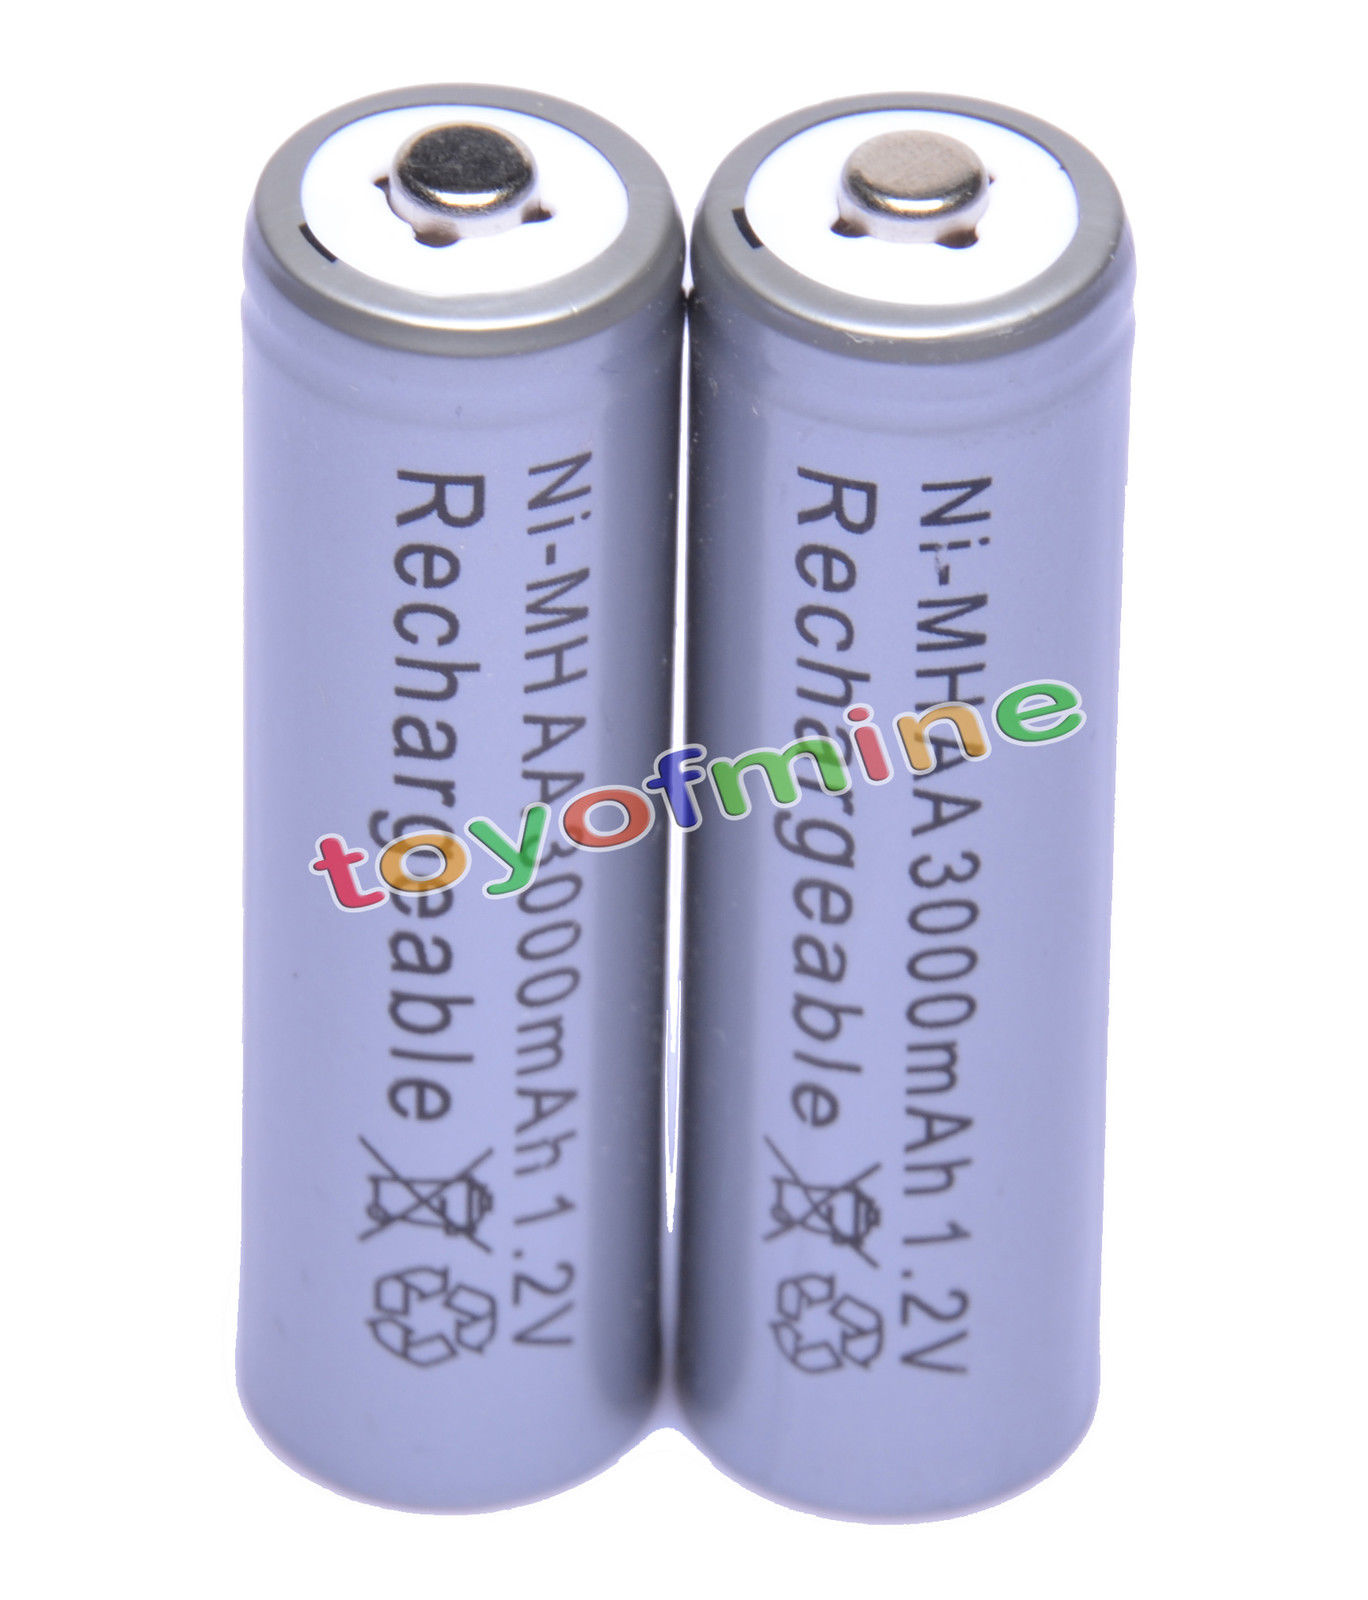 2x AA battery batteries Bulk Nickel Hydride Rechargeable NI-MH 3000mAh 1.2V Gray